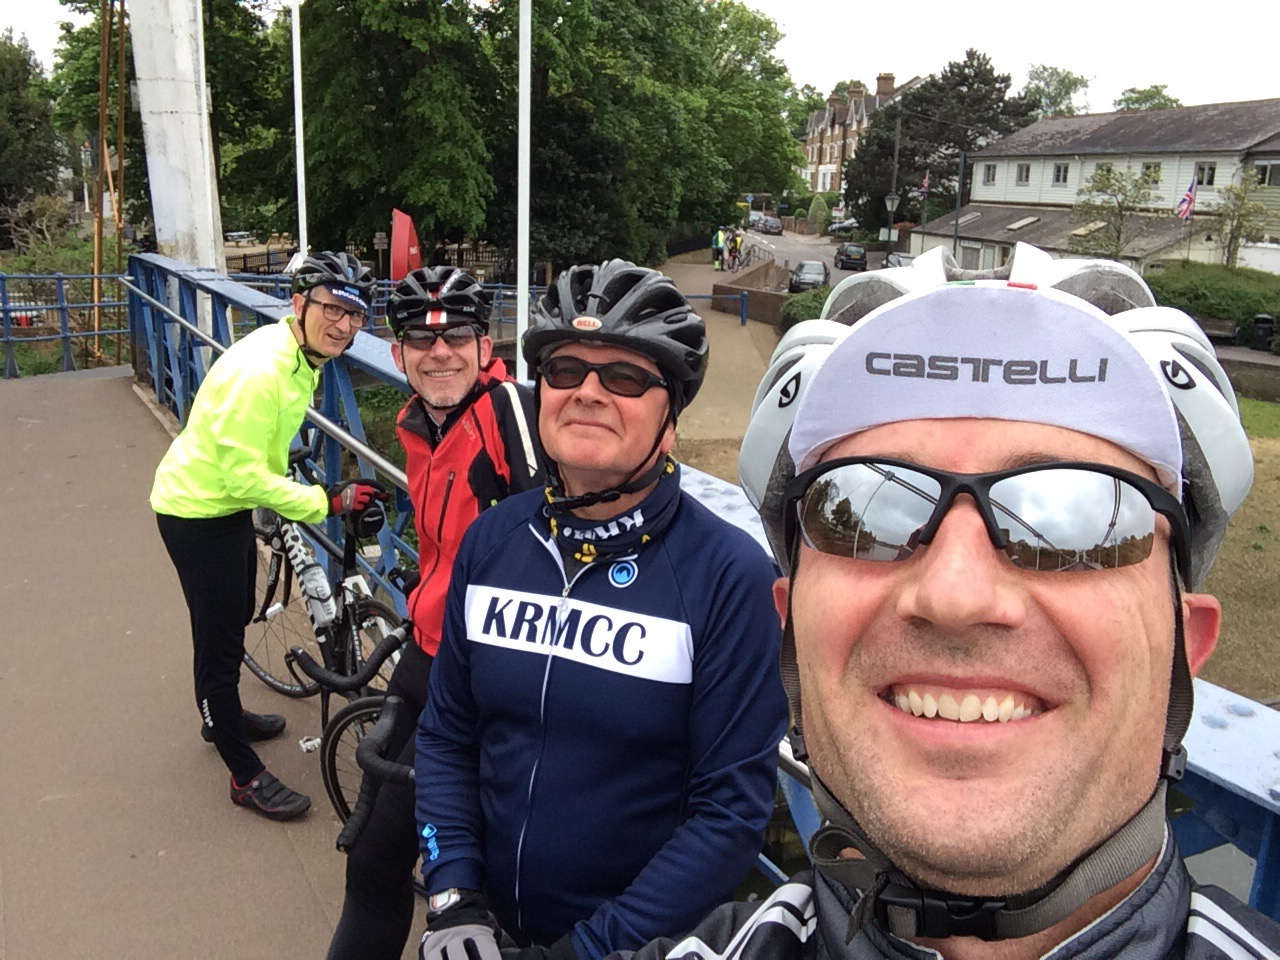 KRMCC cyclists at Teddington lock bridge